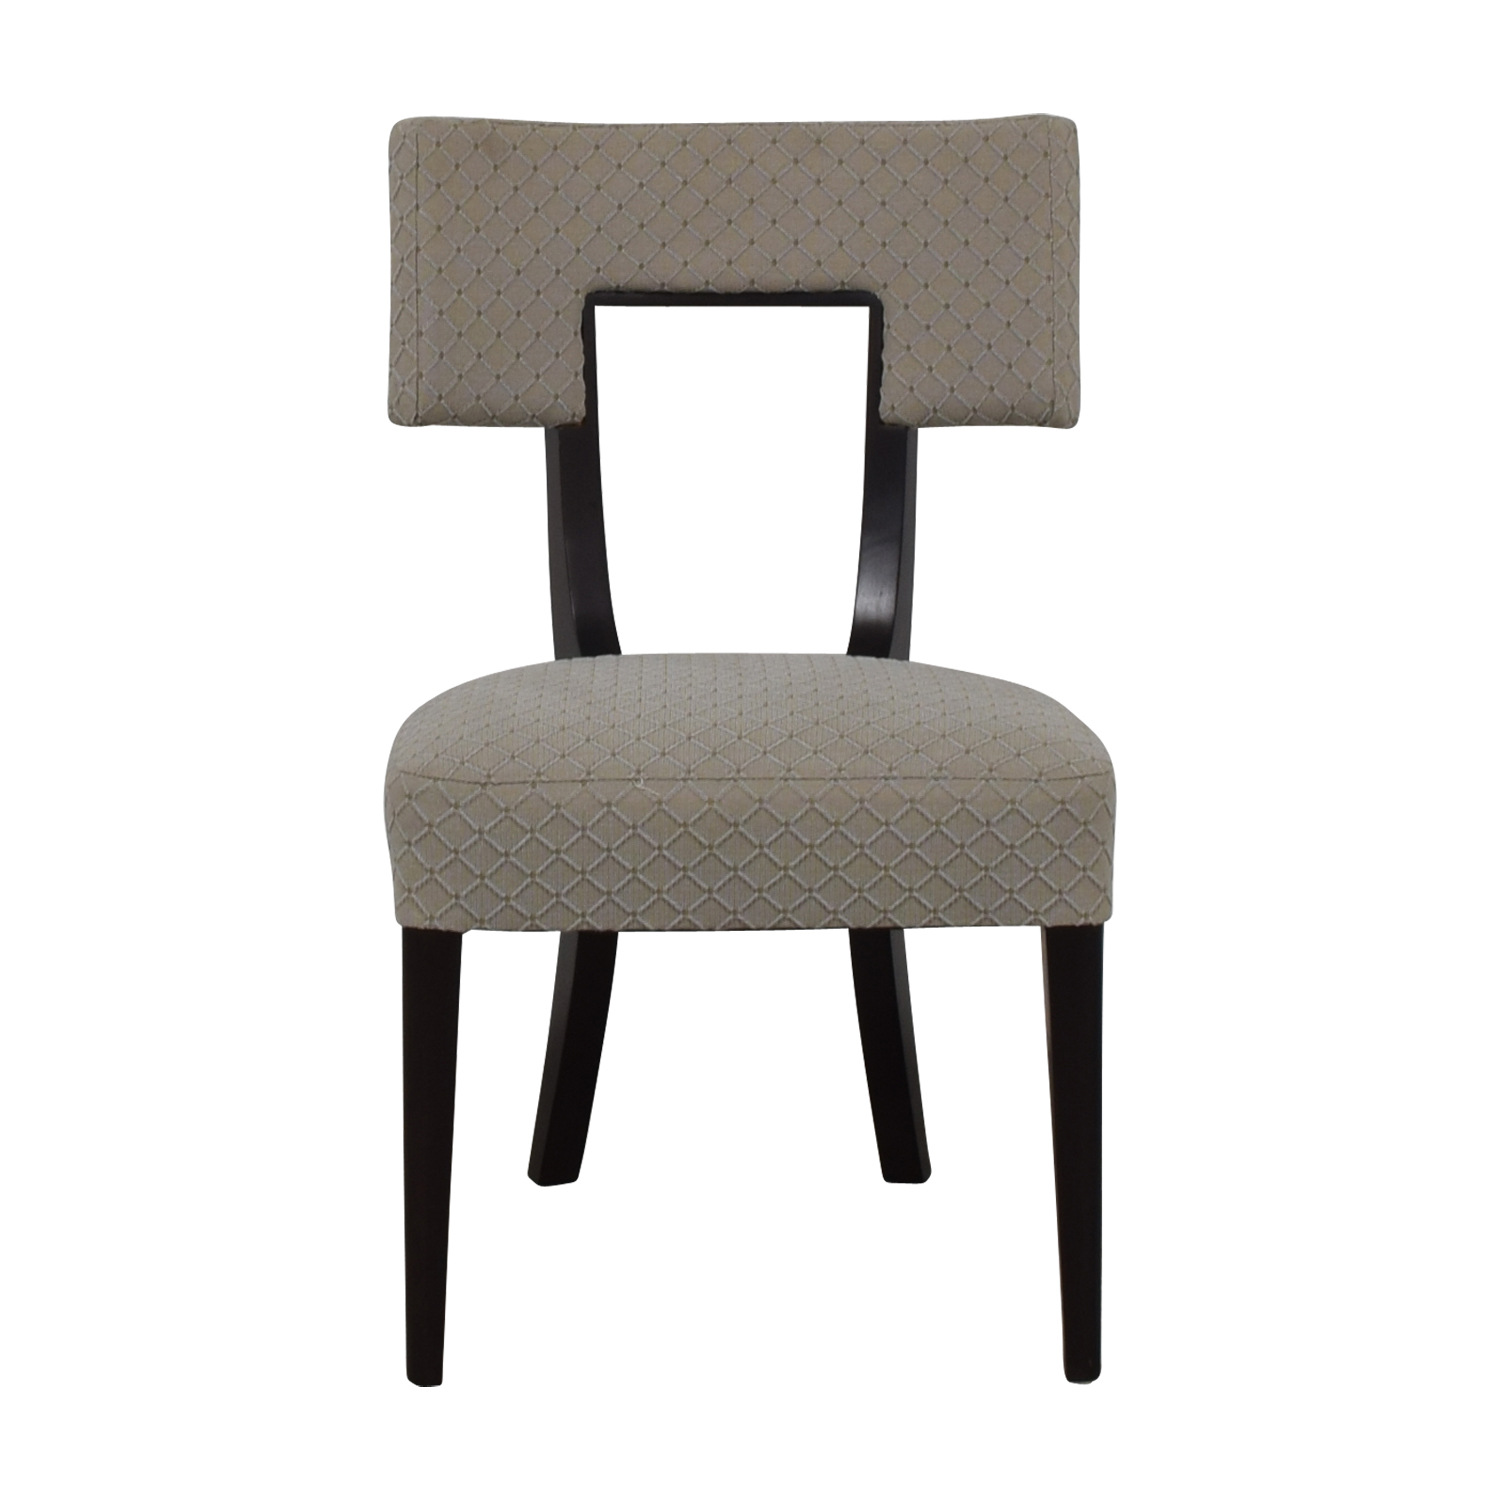 Furniture Masters Furniture Masters Diamond Chair for sale